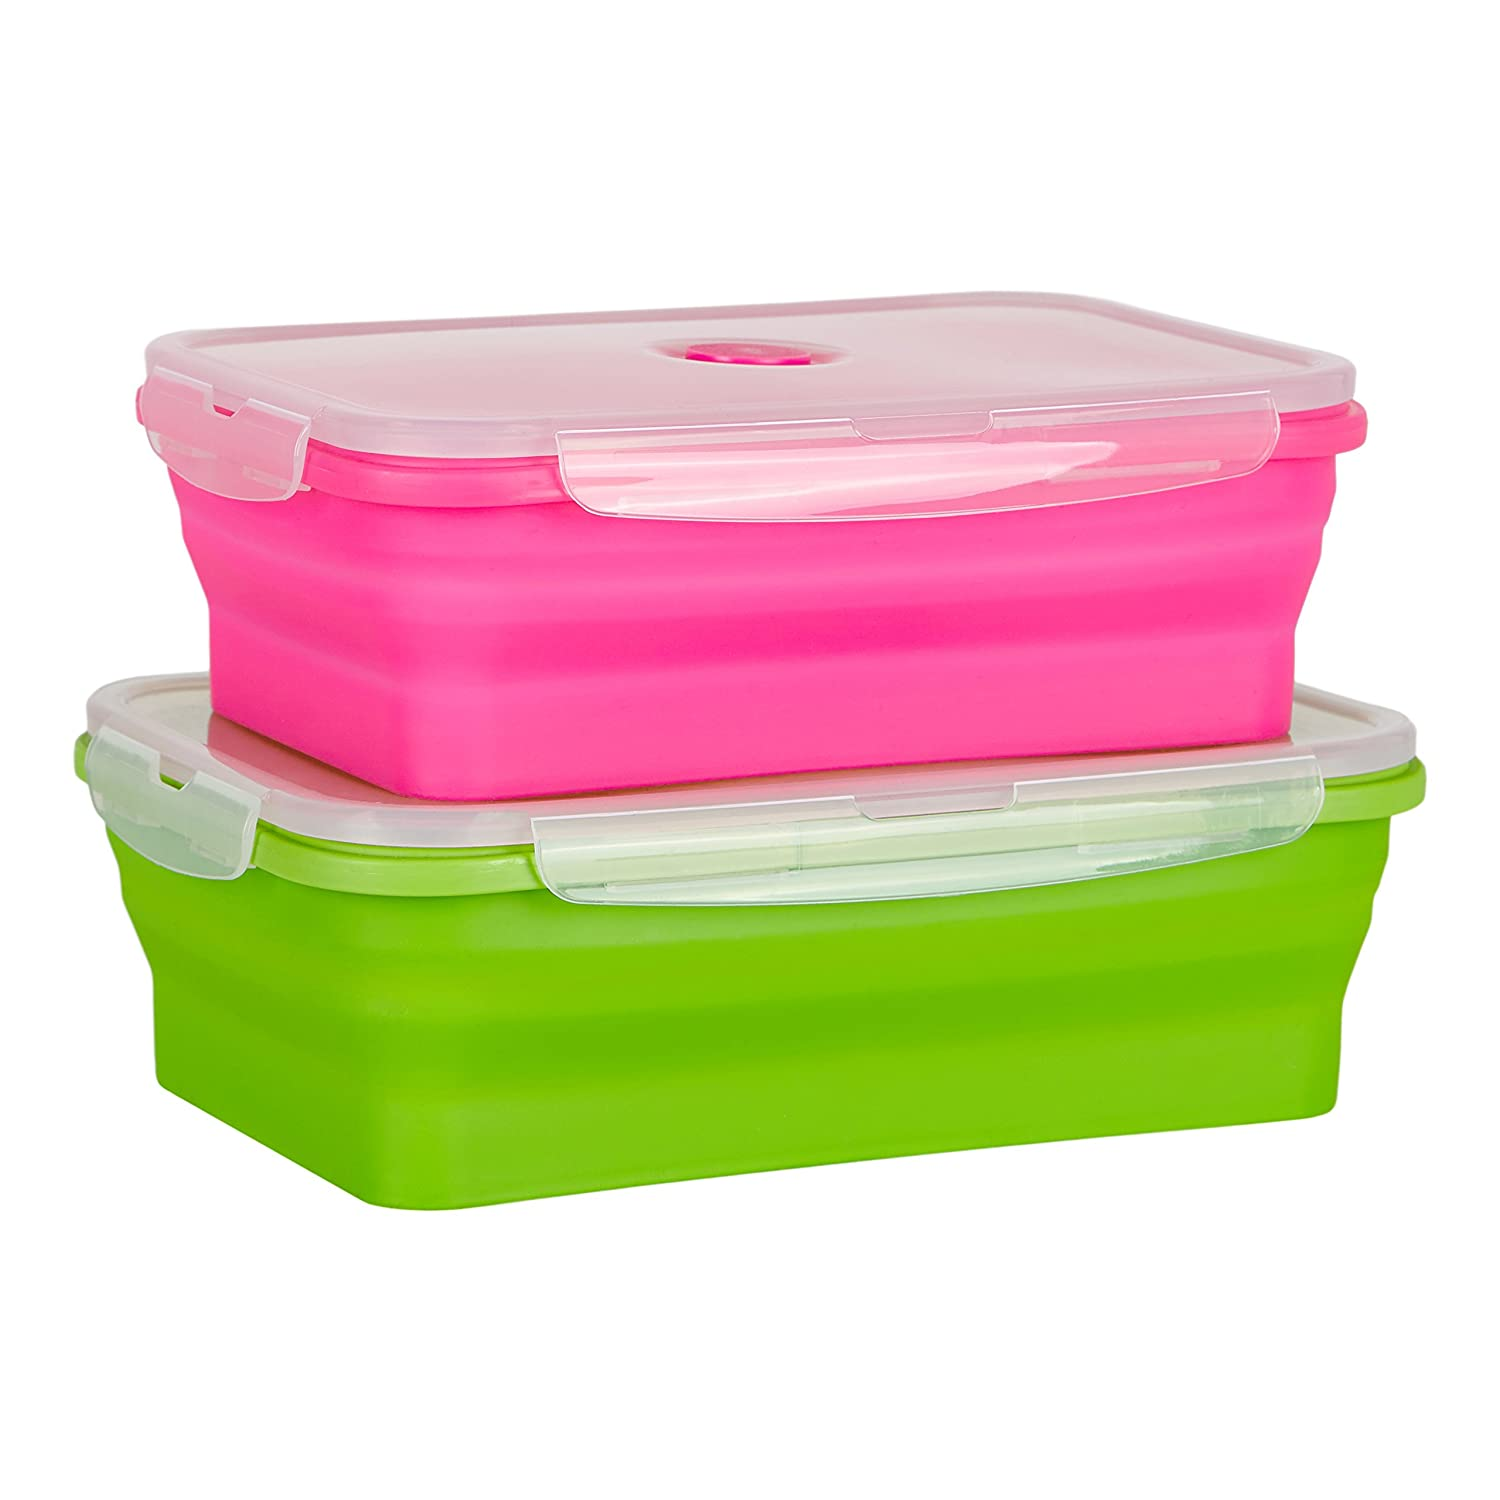 Flat Stacks Collapsible Silicone Food Kitchen Storage Containers | Space Saving | BPA Free | Air-tight | Leak proof | Microwave, Fridge, Freezer & Dishwasher Safe | Multicolour 2 Pack - Large Rectangular | The Original Flat Stacks Food Boxes